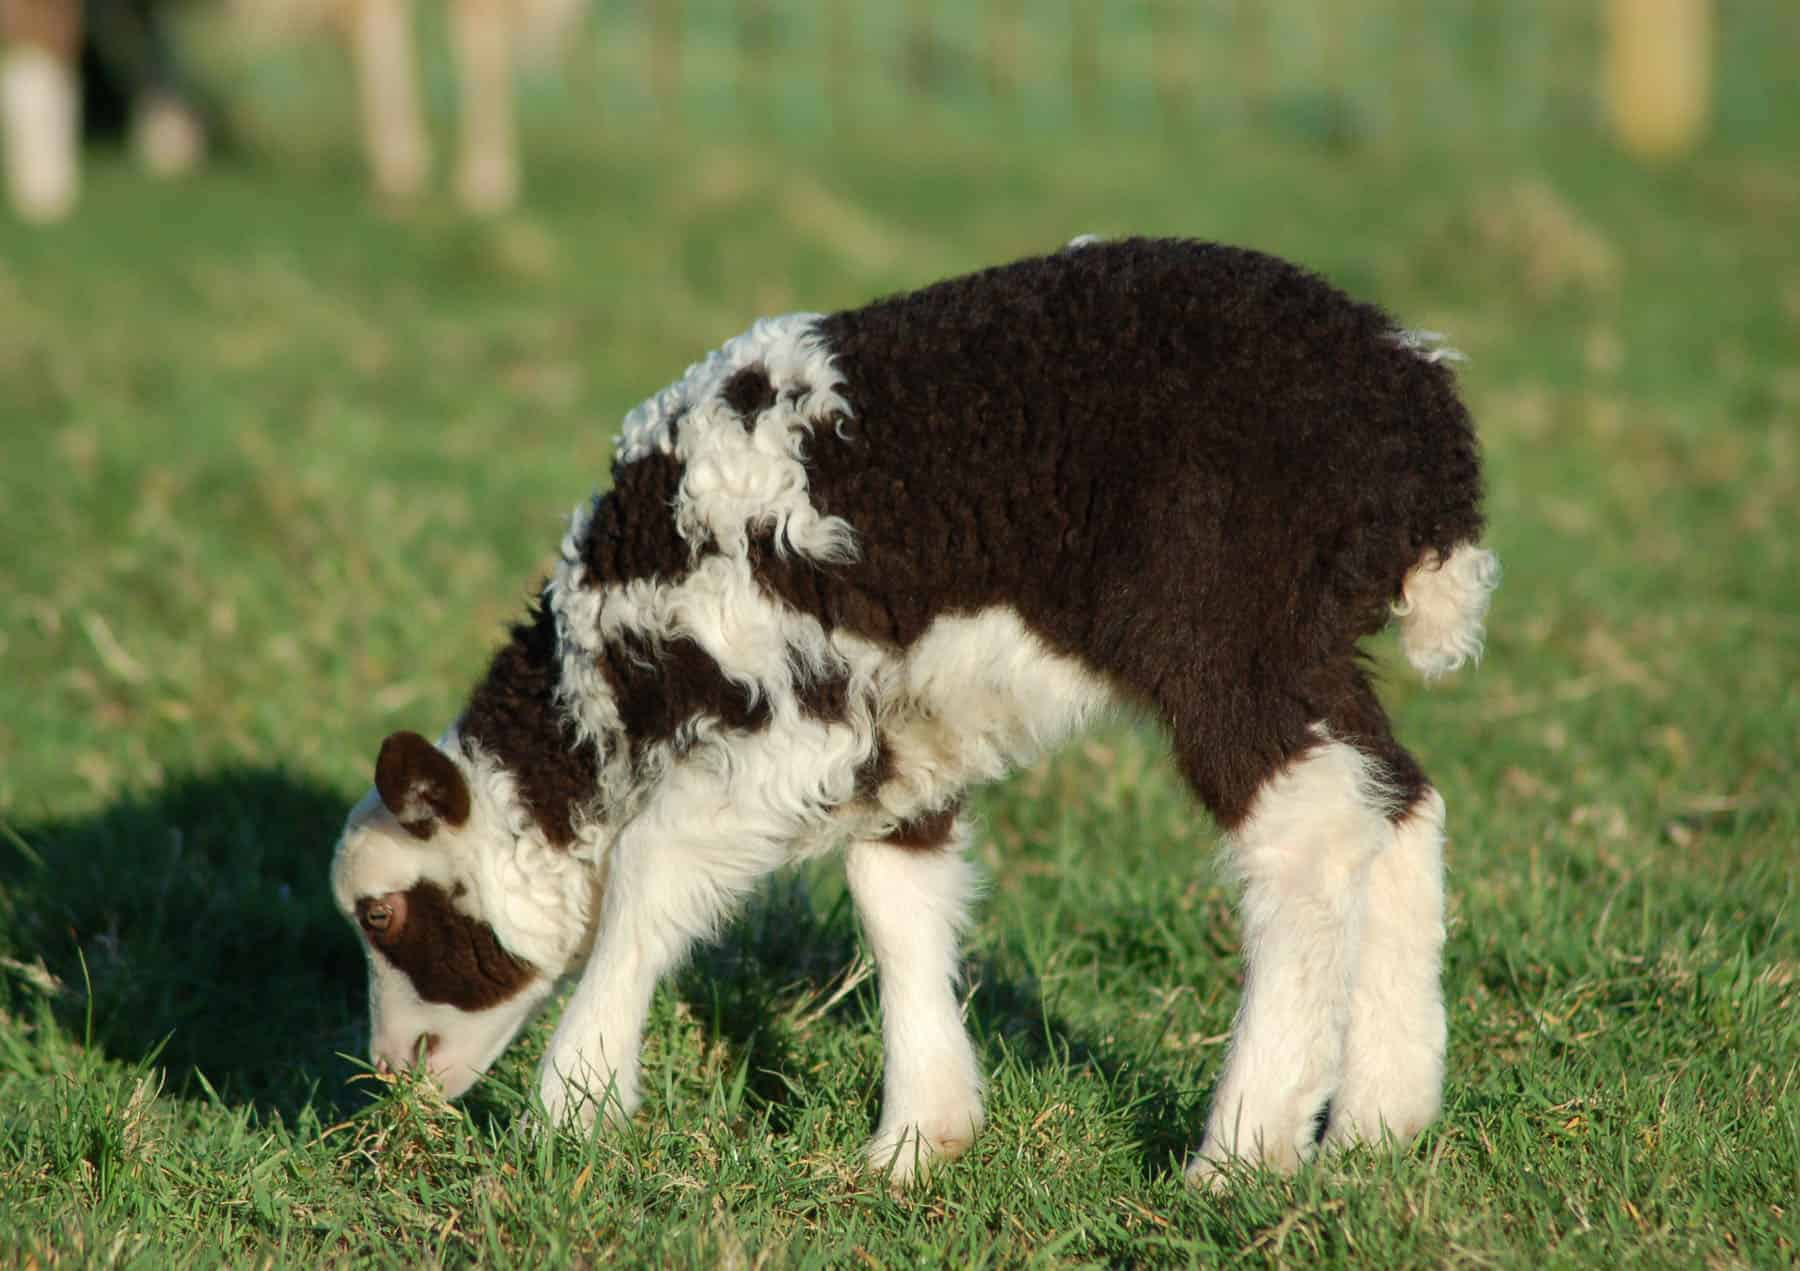 Martha markings patchwork sheep moorit white spotted brown primitive sheep crossbreed